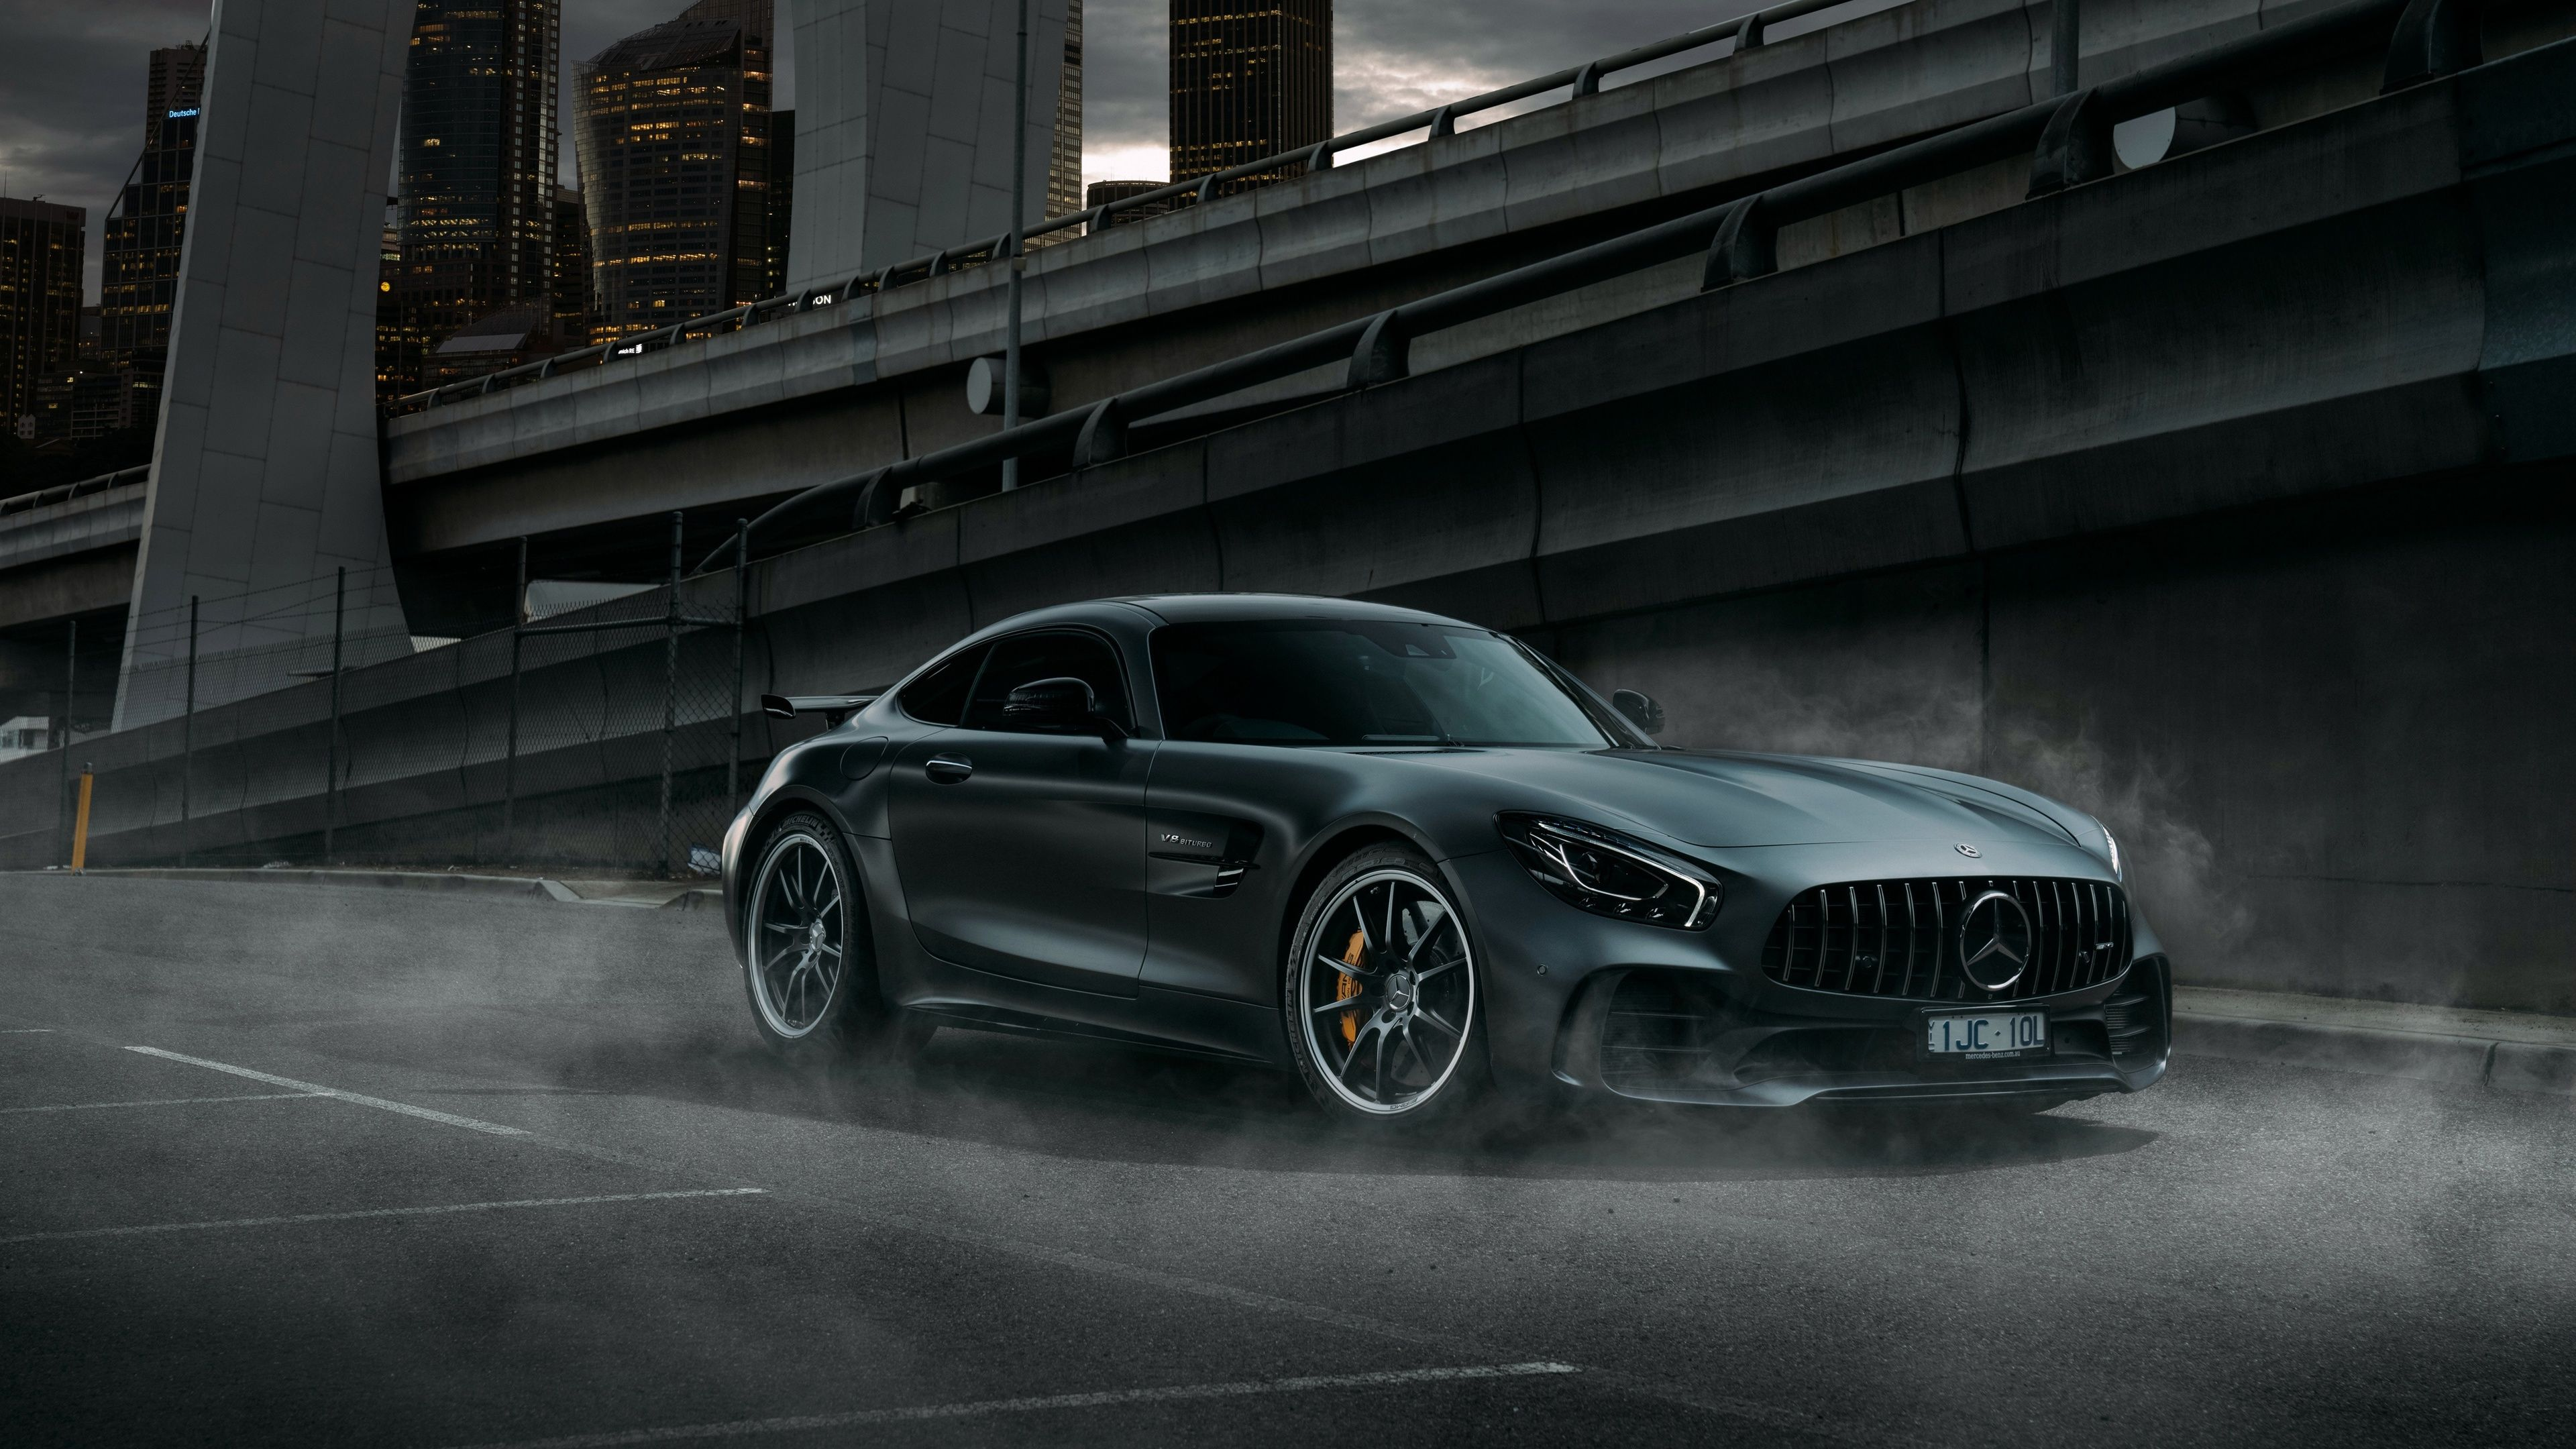 Wallpaper 4k 2018 Mercedes Benz Gt R Amg 2018 Cars Wallpapers 4k